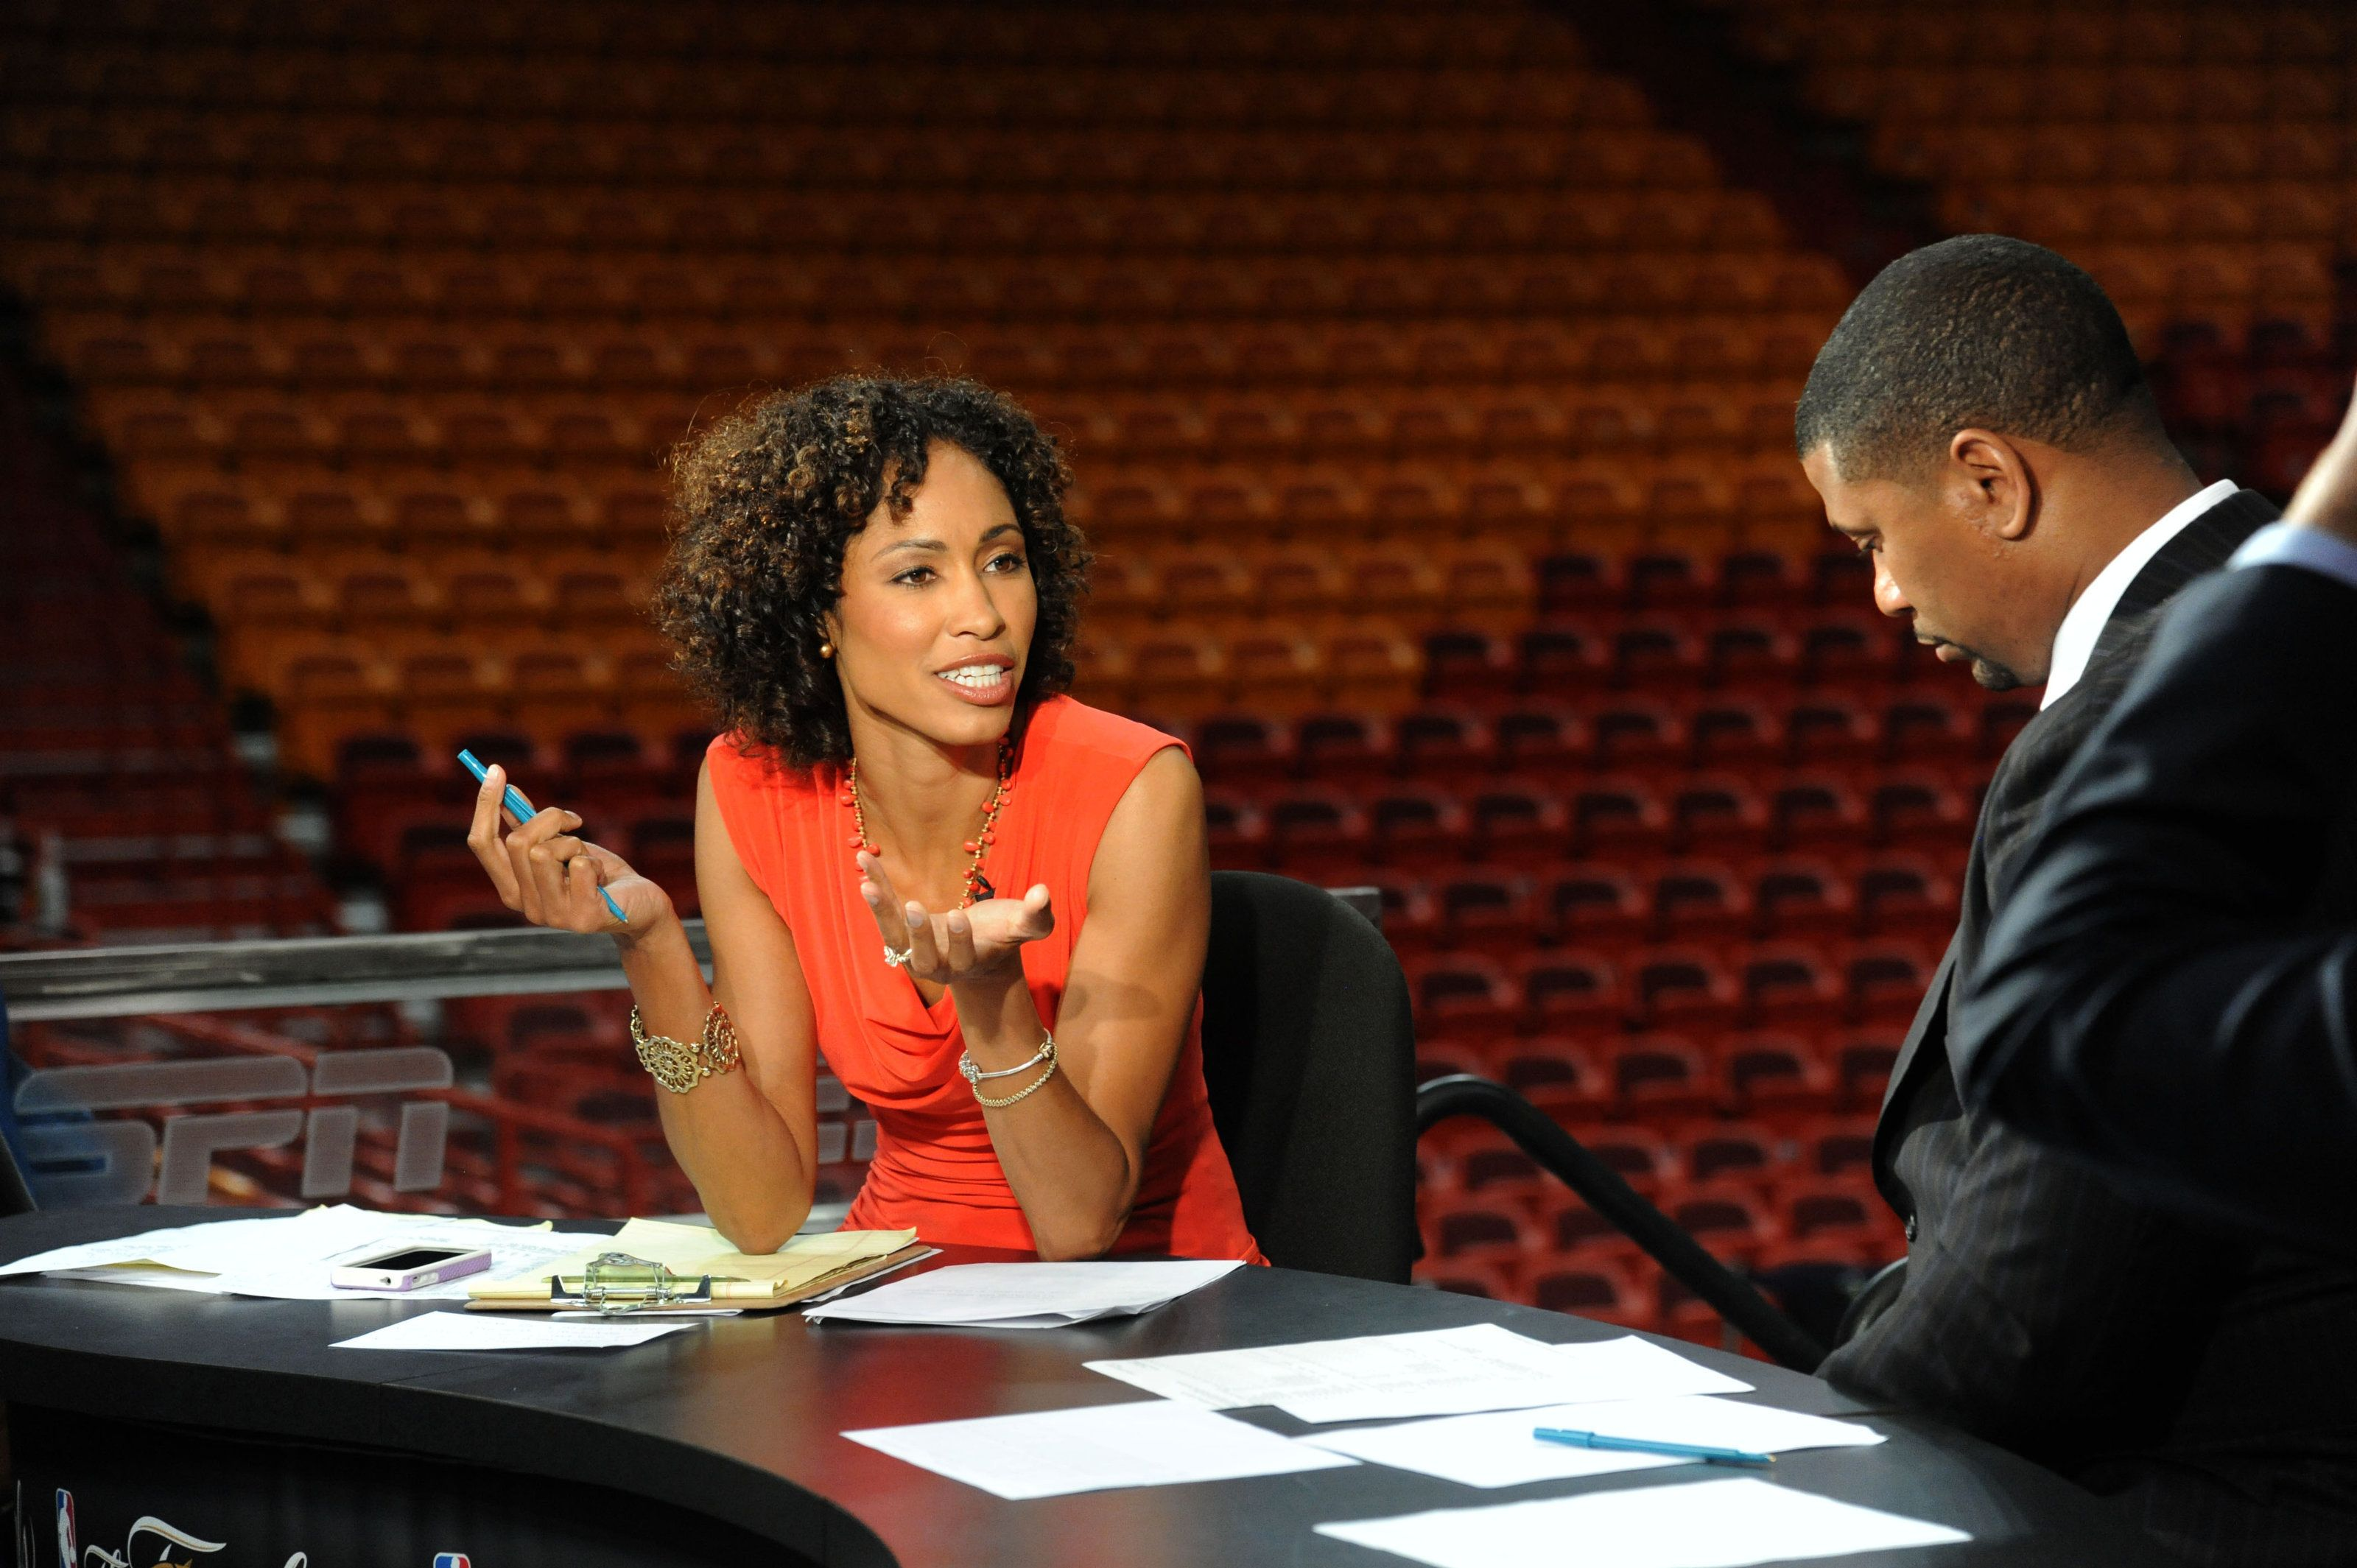 Steele speaks with Jalen Rose while preparing for a 2012 NBA Finals game at American Airlines Arena in Miami, Florida.